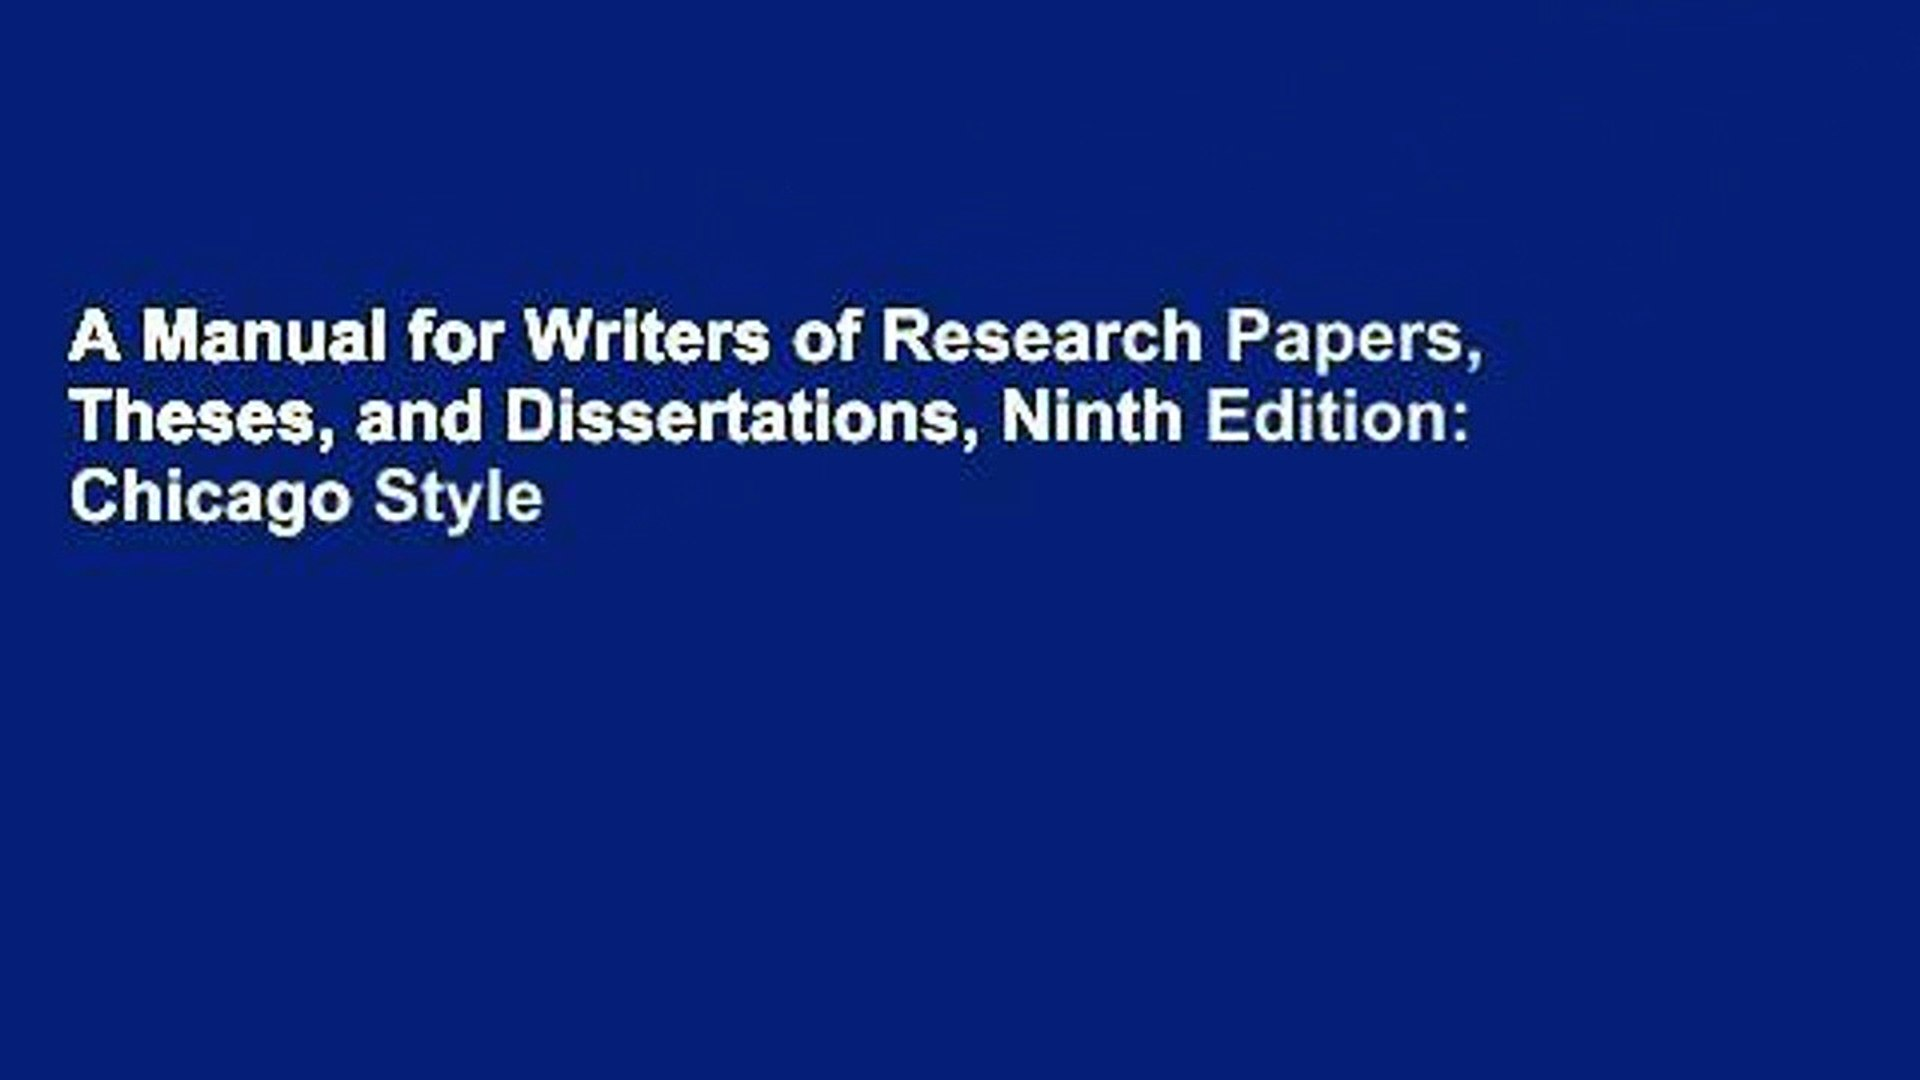 019 X1080 V4x Manual For Writers Of Researchs Theses And Dissertations 9th Edition Frightening A Research Papers Pdf Full